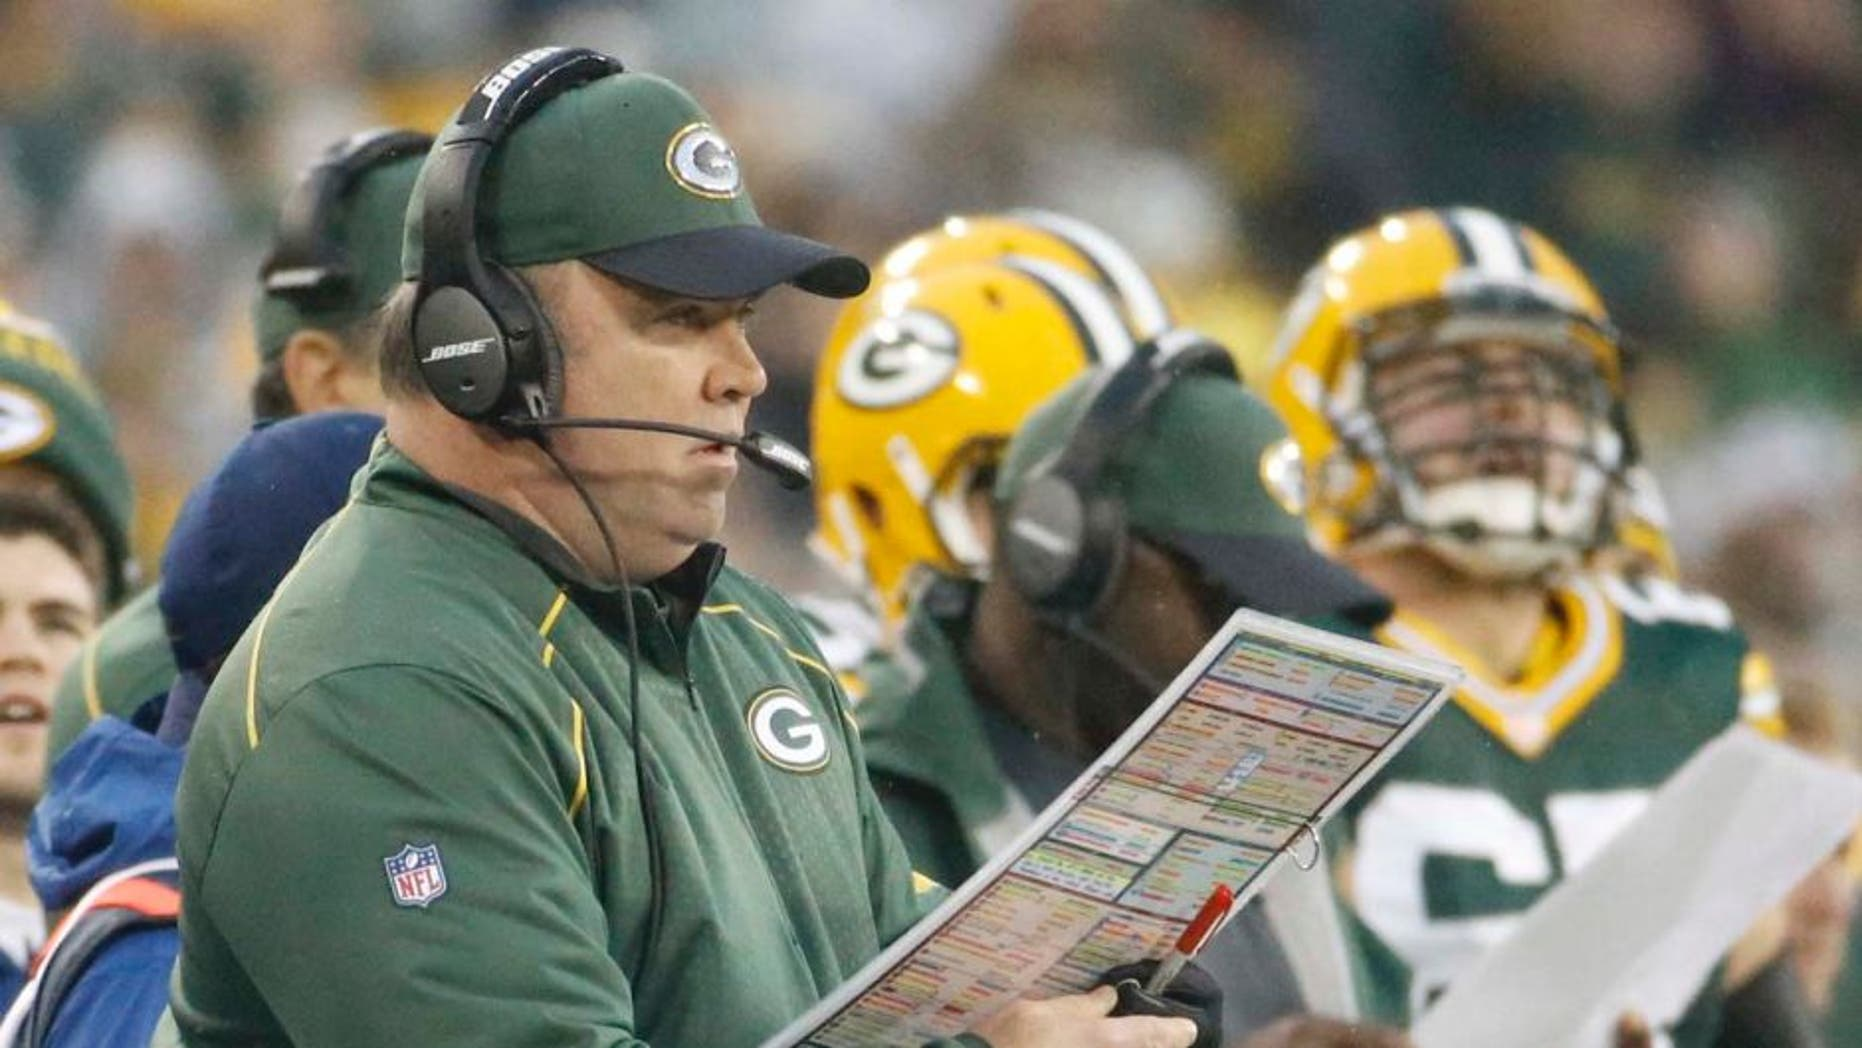 Green Bay Packers head coach Mike McCarthy calls a play during the first half against the Dallas Cowboys in Green Bay, Wis., on Sunday, Dec. 13, 2015.